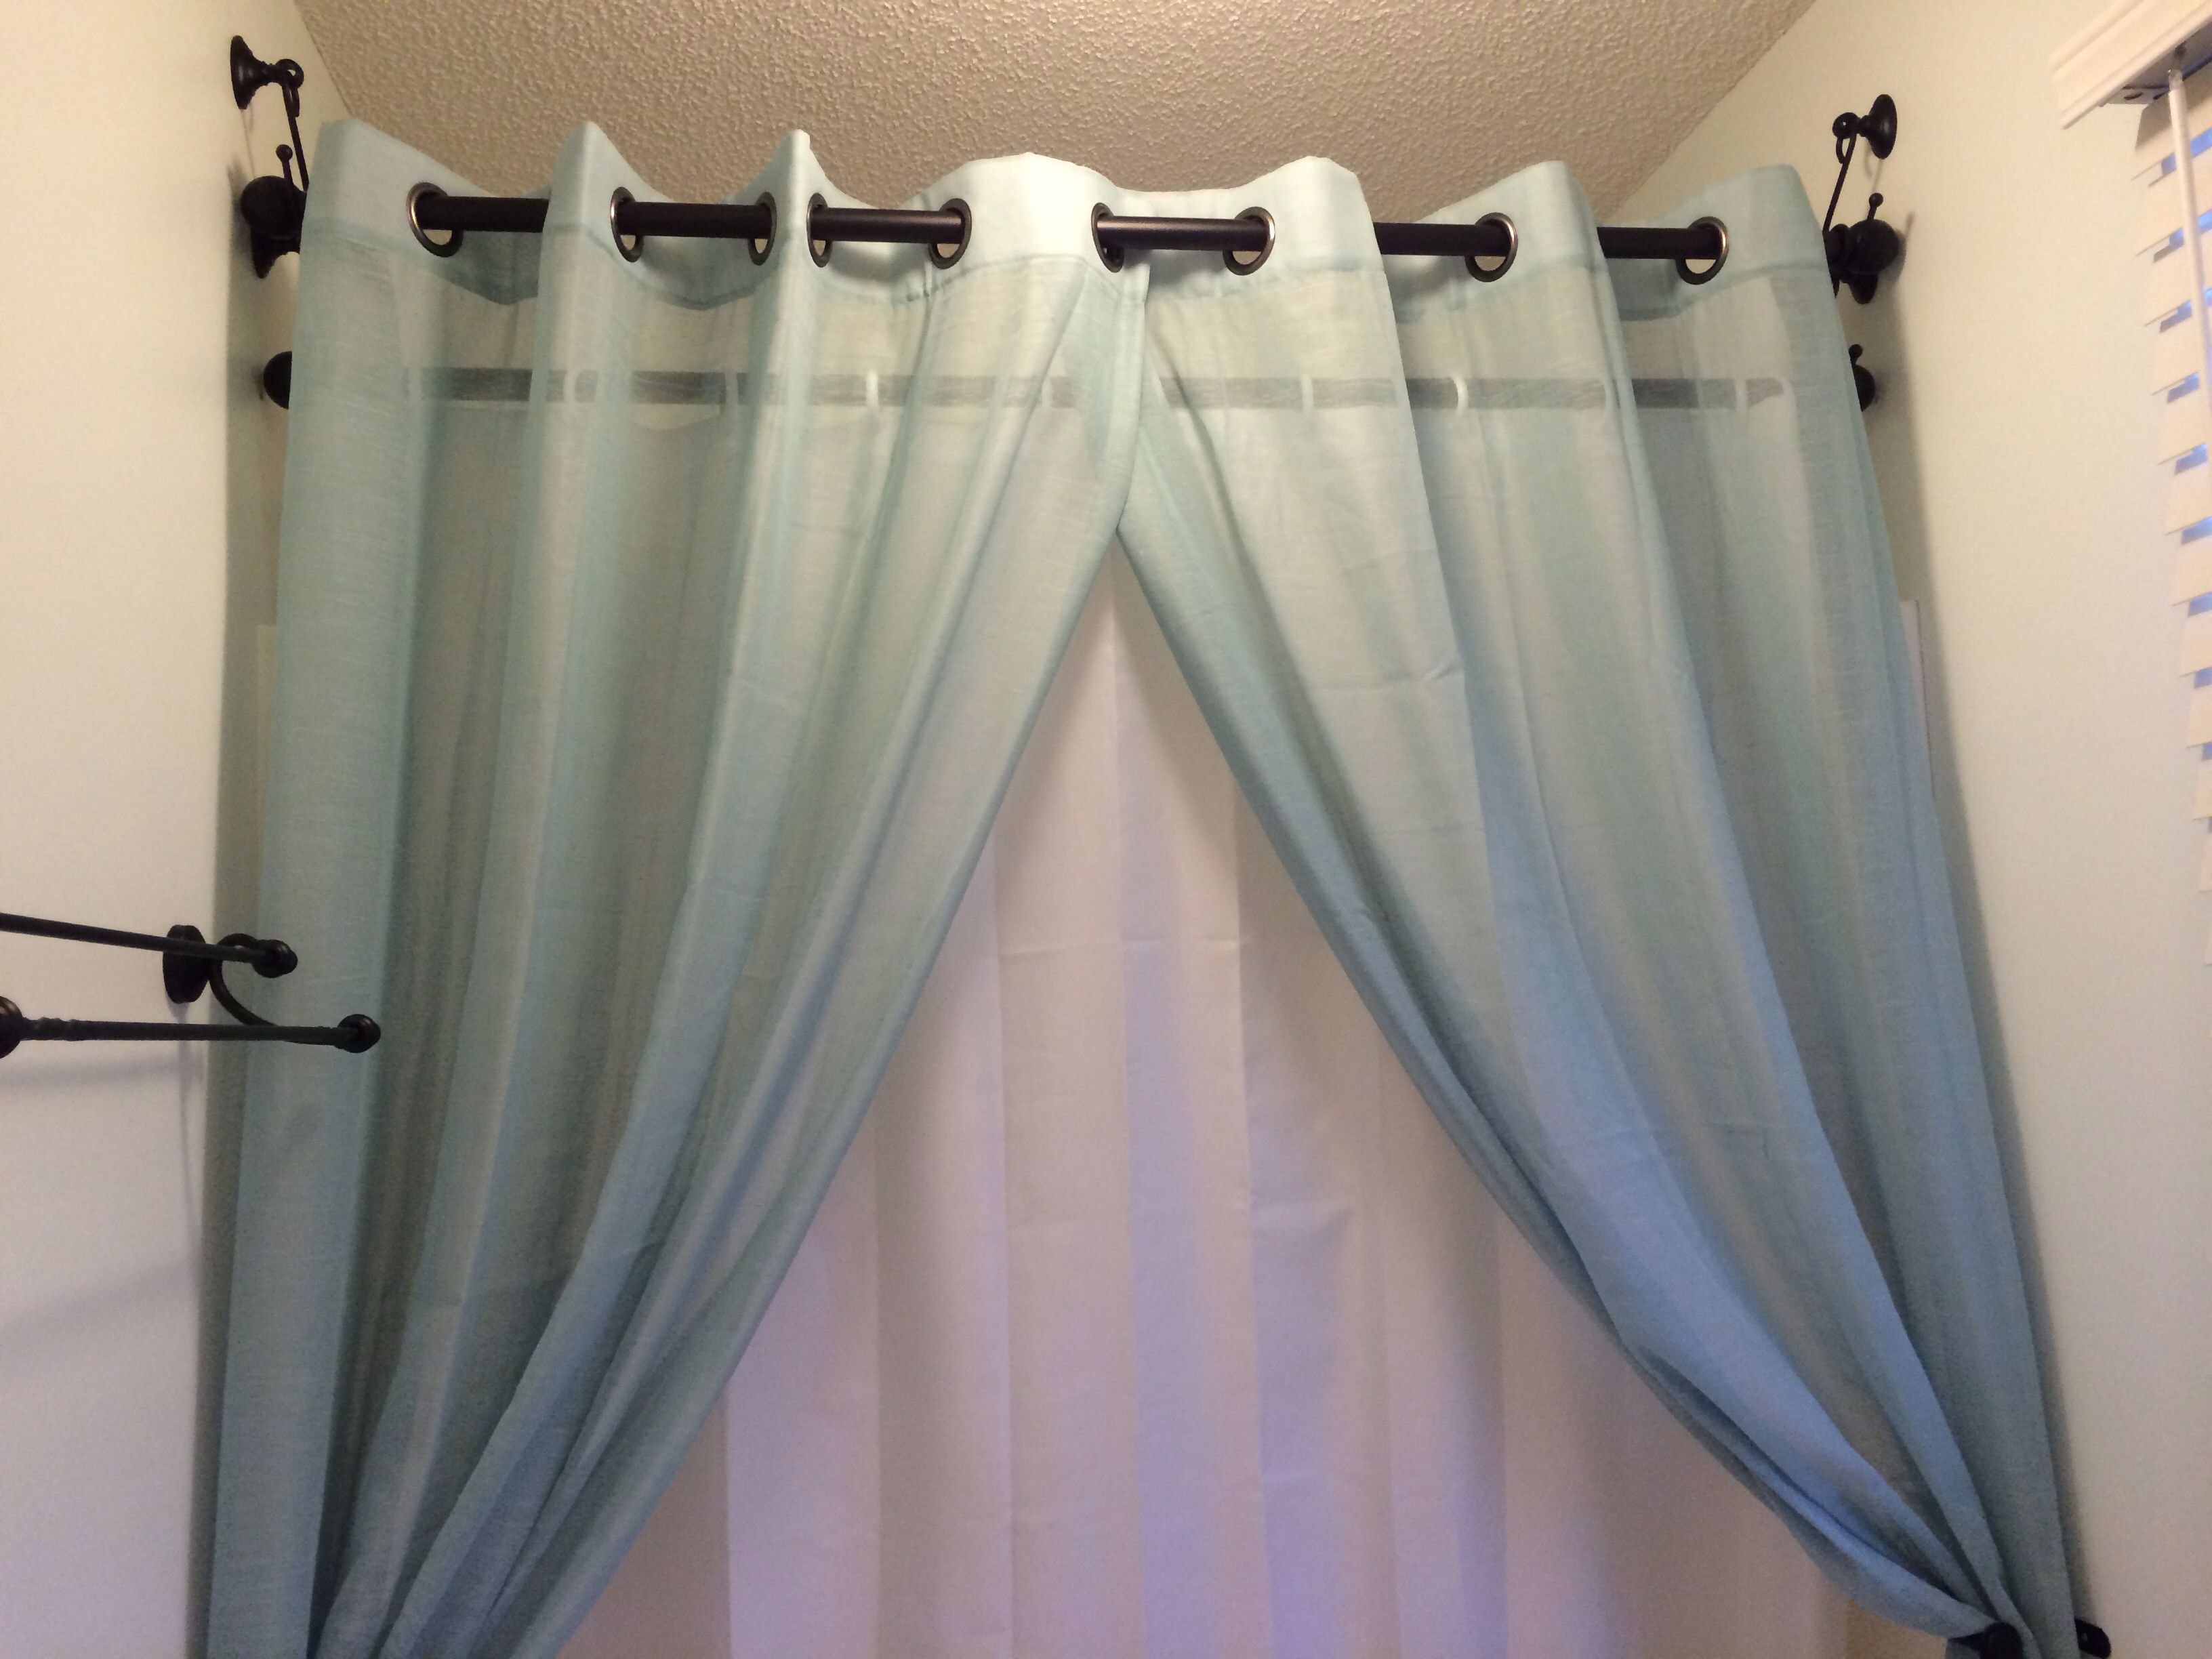 Regular Curtain Rods And Tie Back Hooks For Shower Curtain Rods